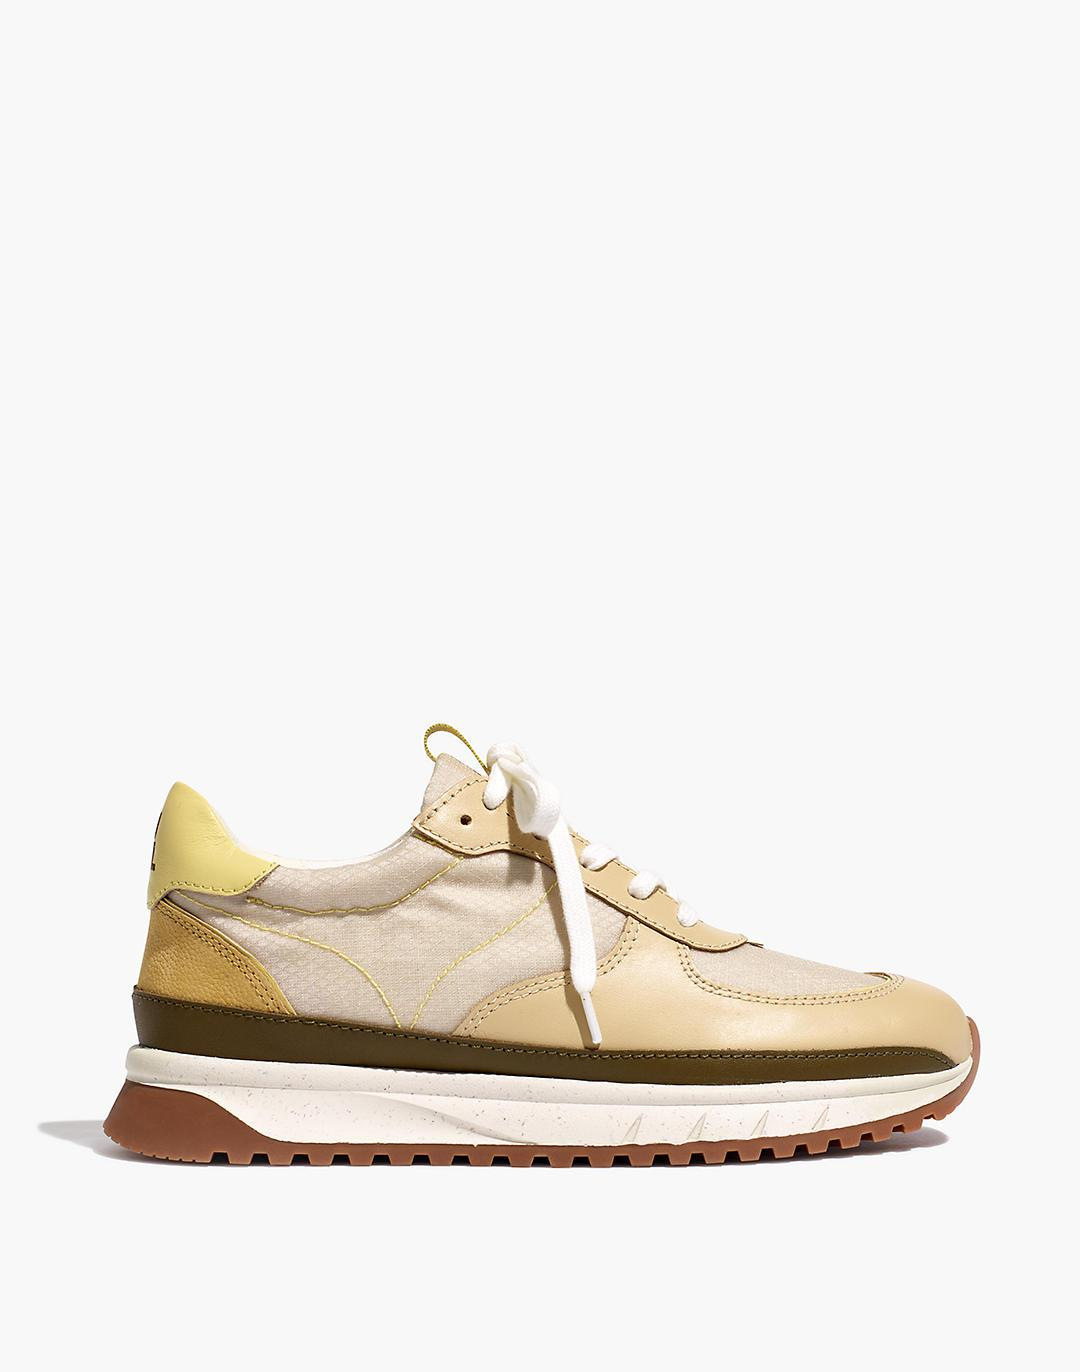 Kickoff Trainer Sneakers in Ripstop Nylon and Leather 1